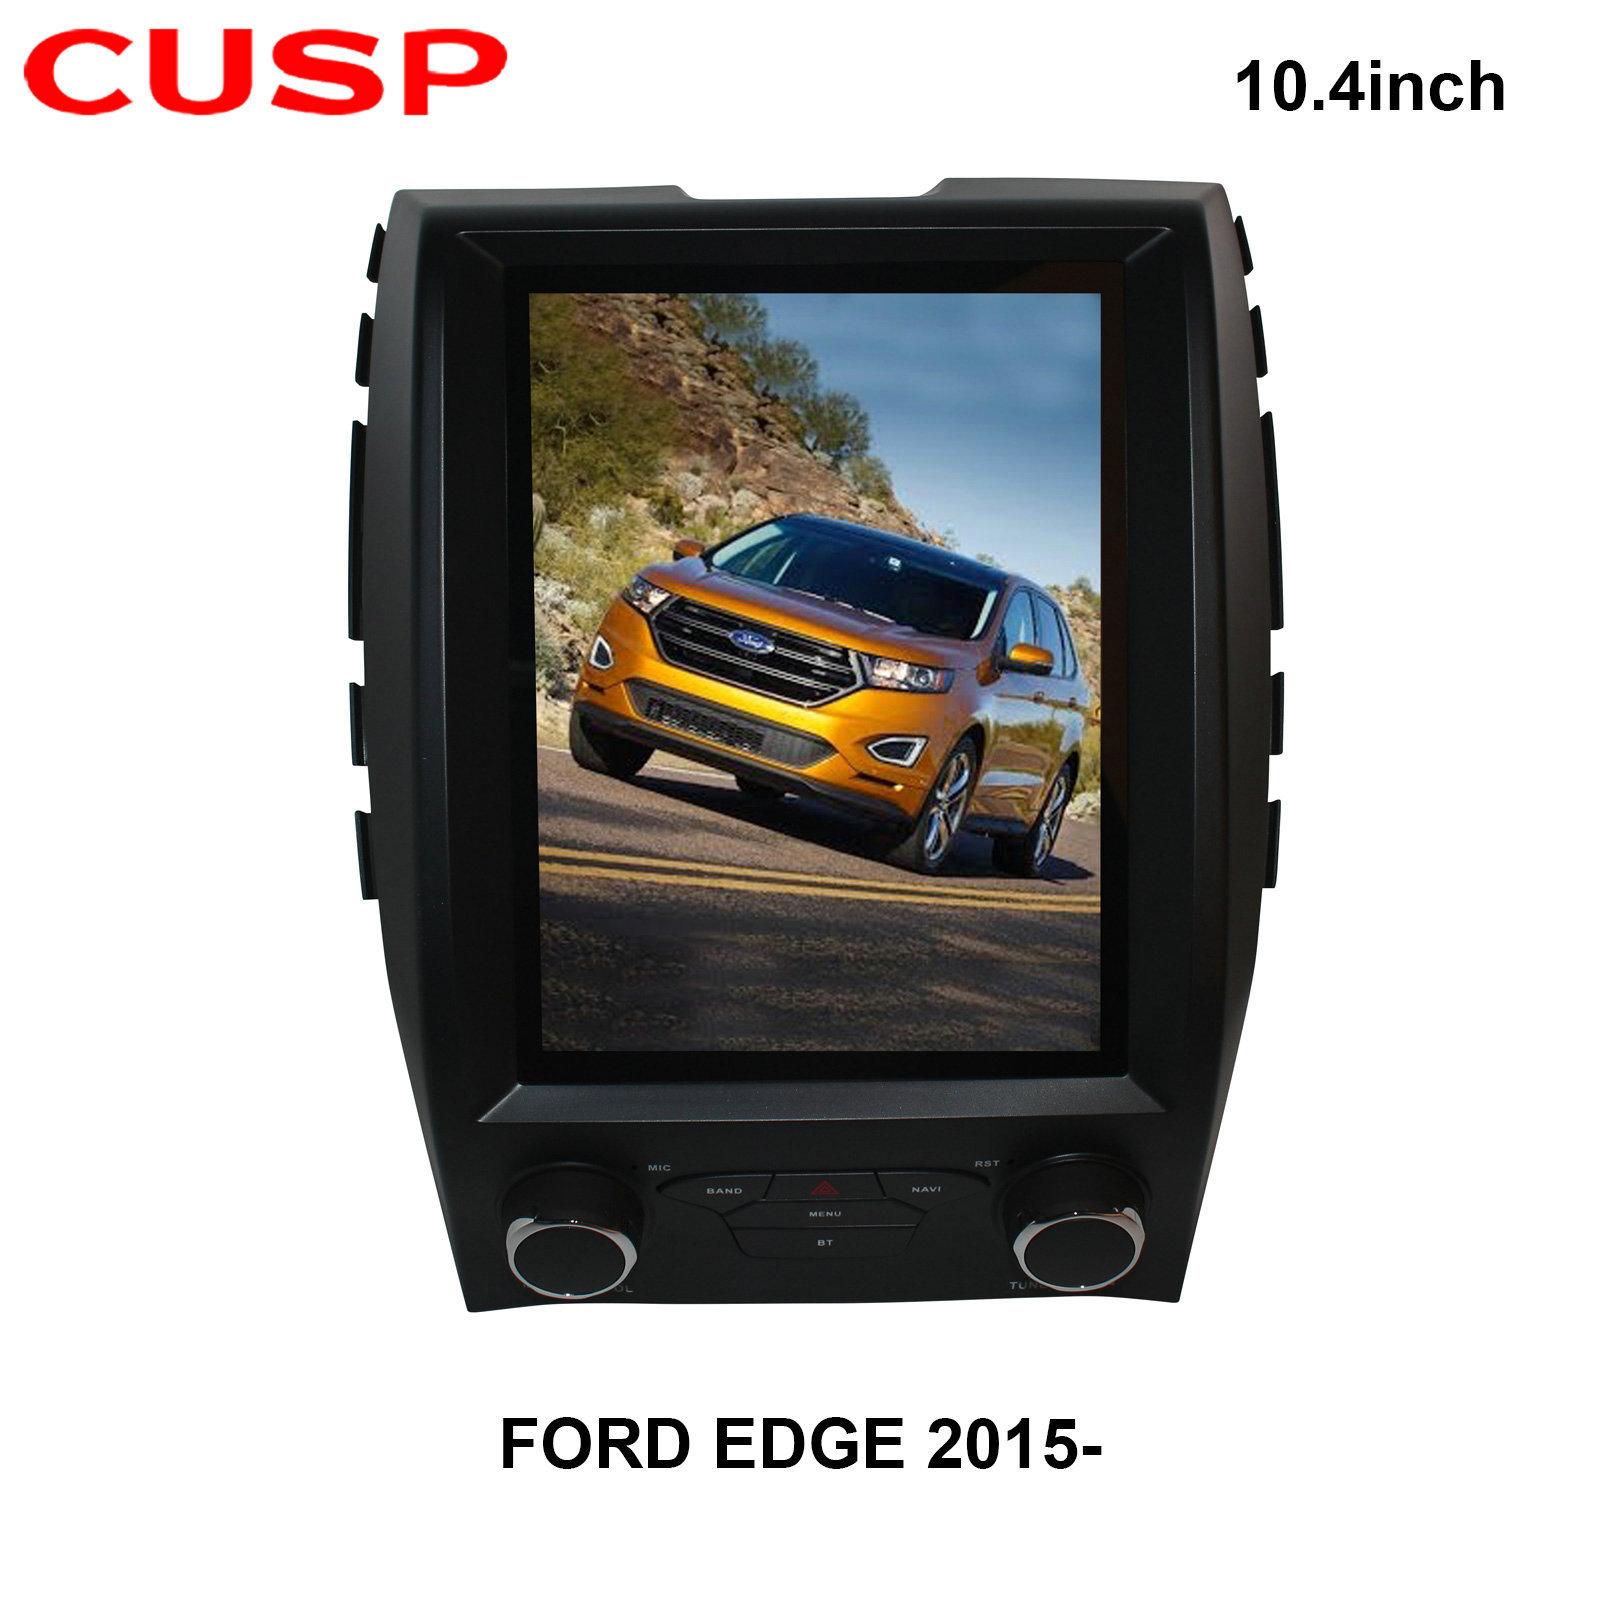 CUSP Vertical screen sharp world automatic air conditioner 10.4-inch car audio and video car GPS And